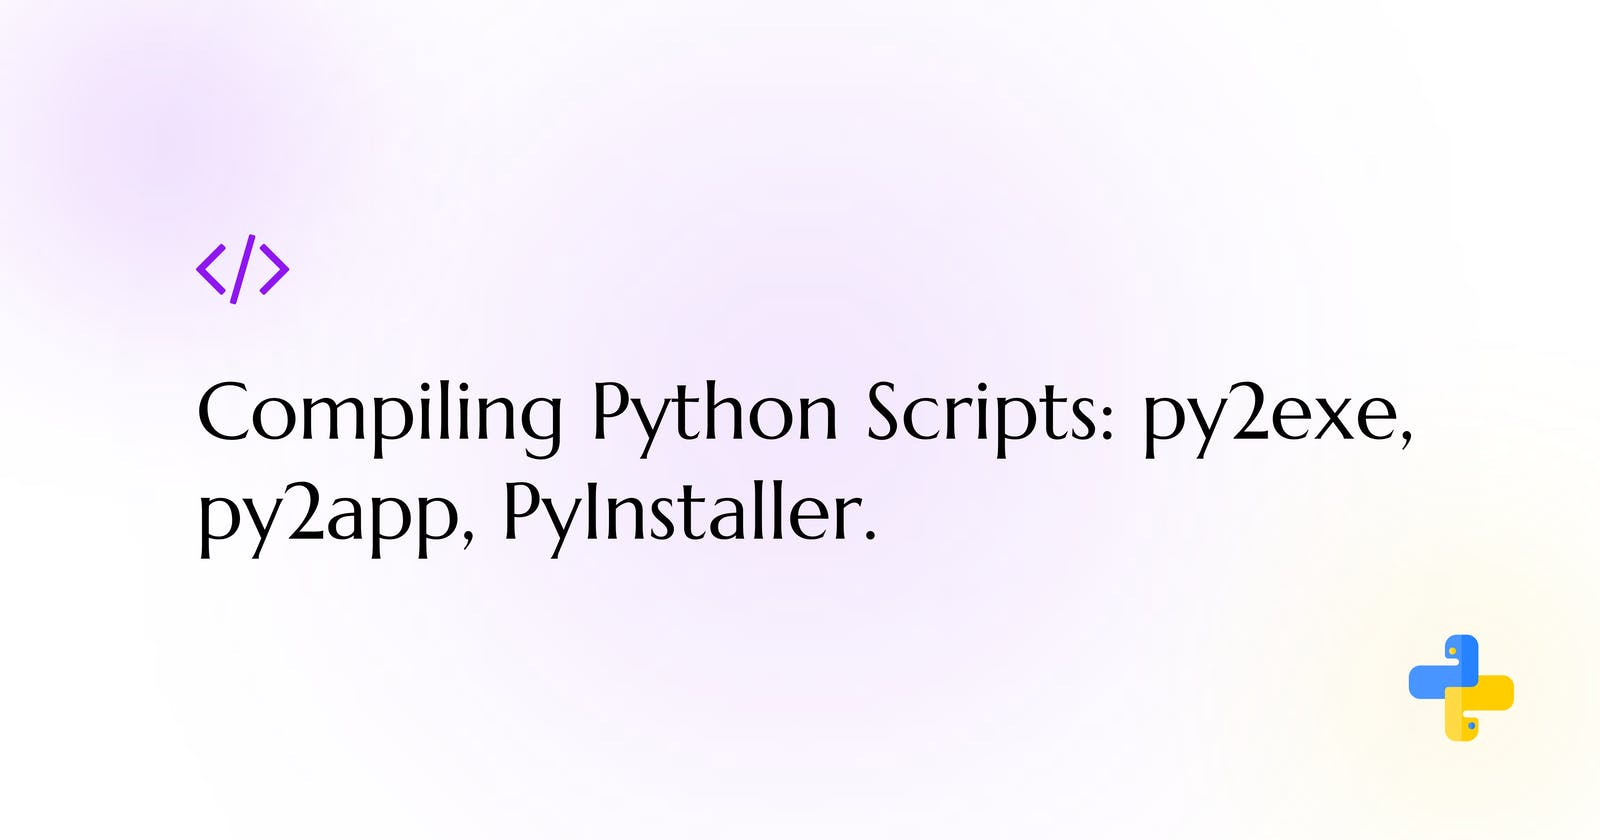 How to Compile Python scripts to executables (Py2exe, Py2app and PyInstaller)